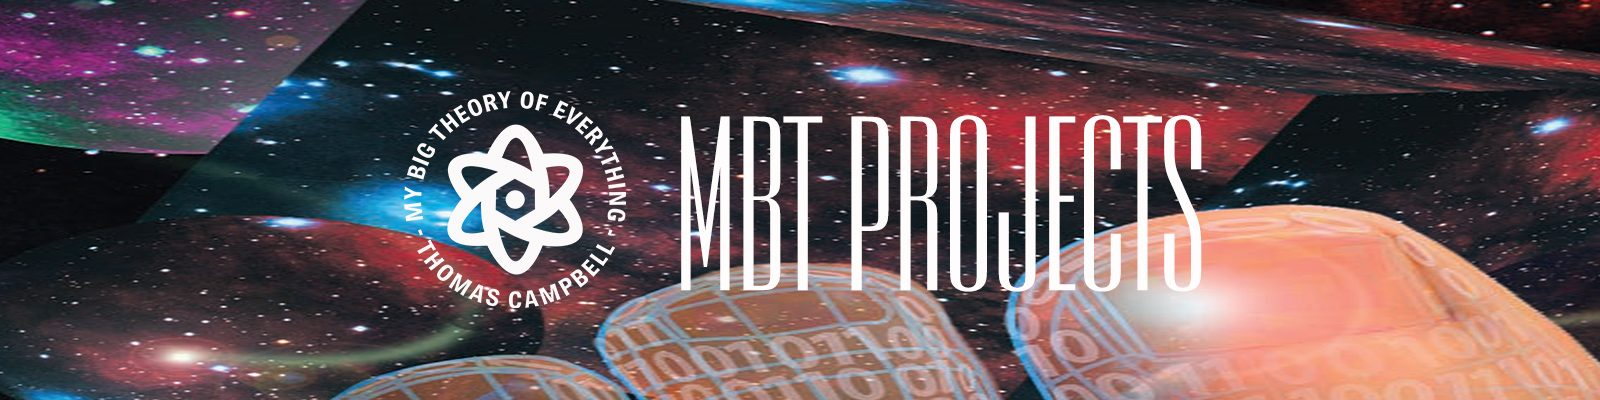 MBT-Projects-Banner-Toe-V.1.1